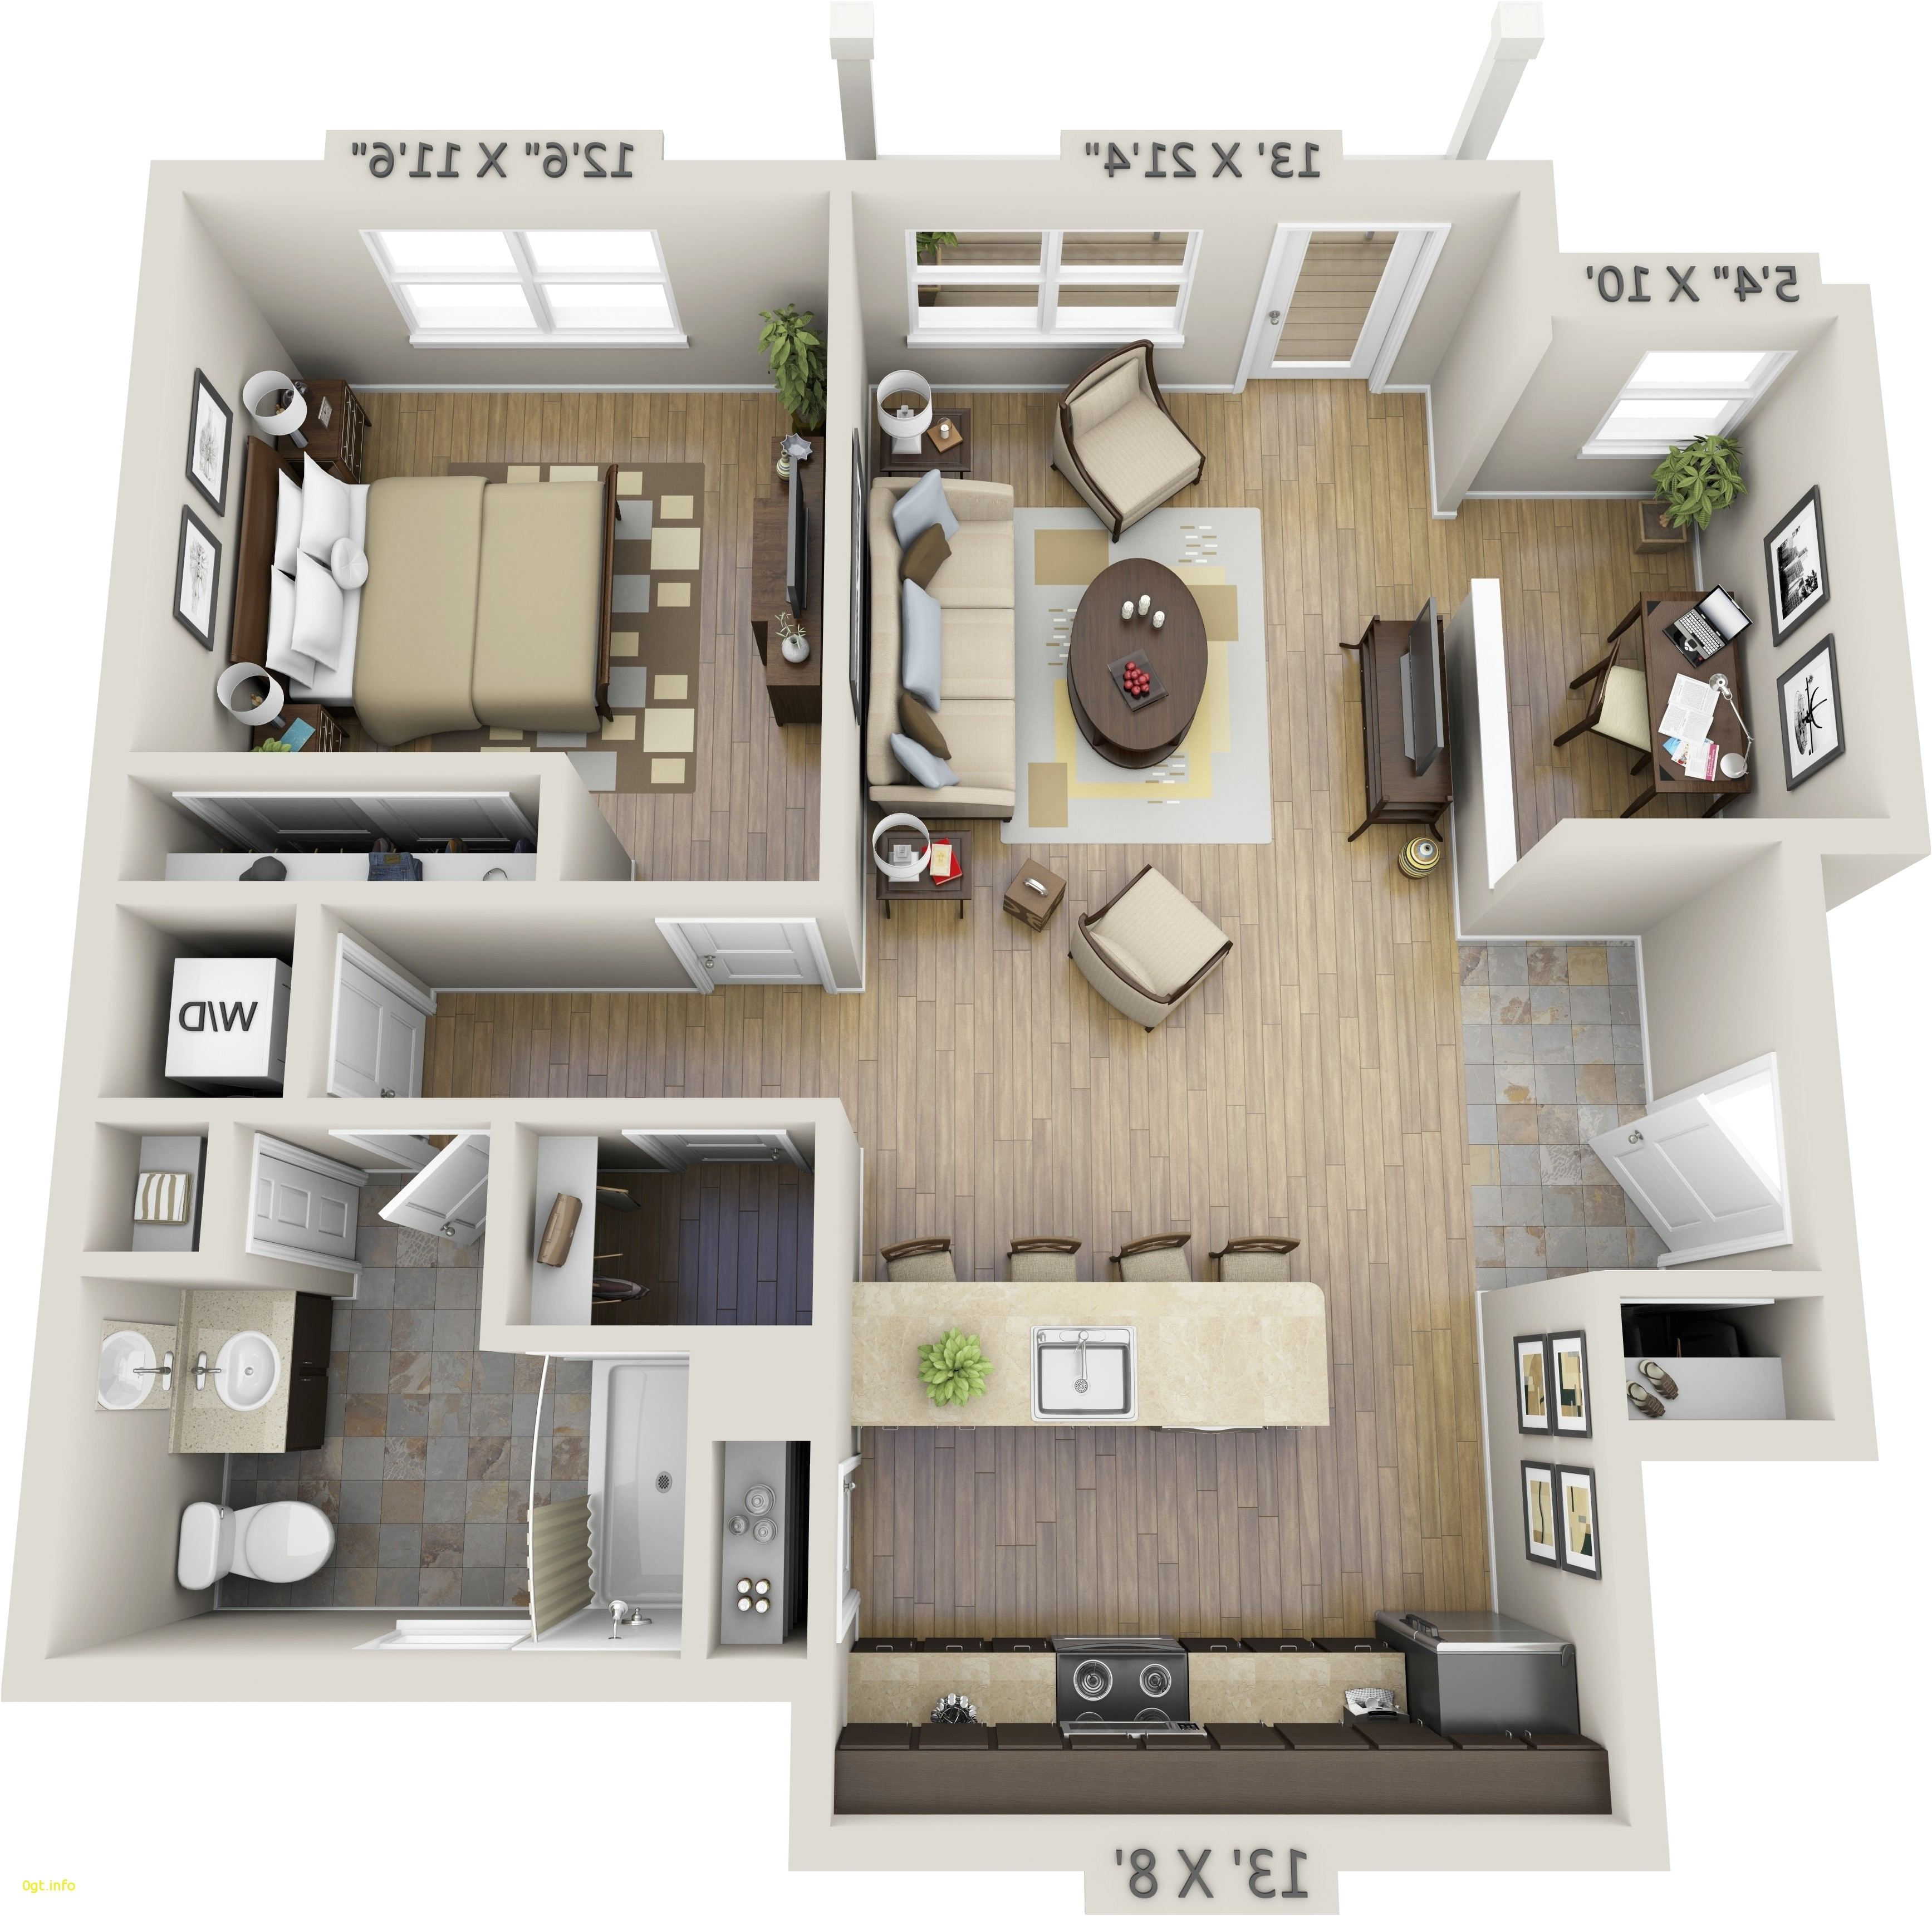 3 bedroom apartments rochester ny best of home design 79 astonishing e bedroom apartment floor planss